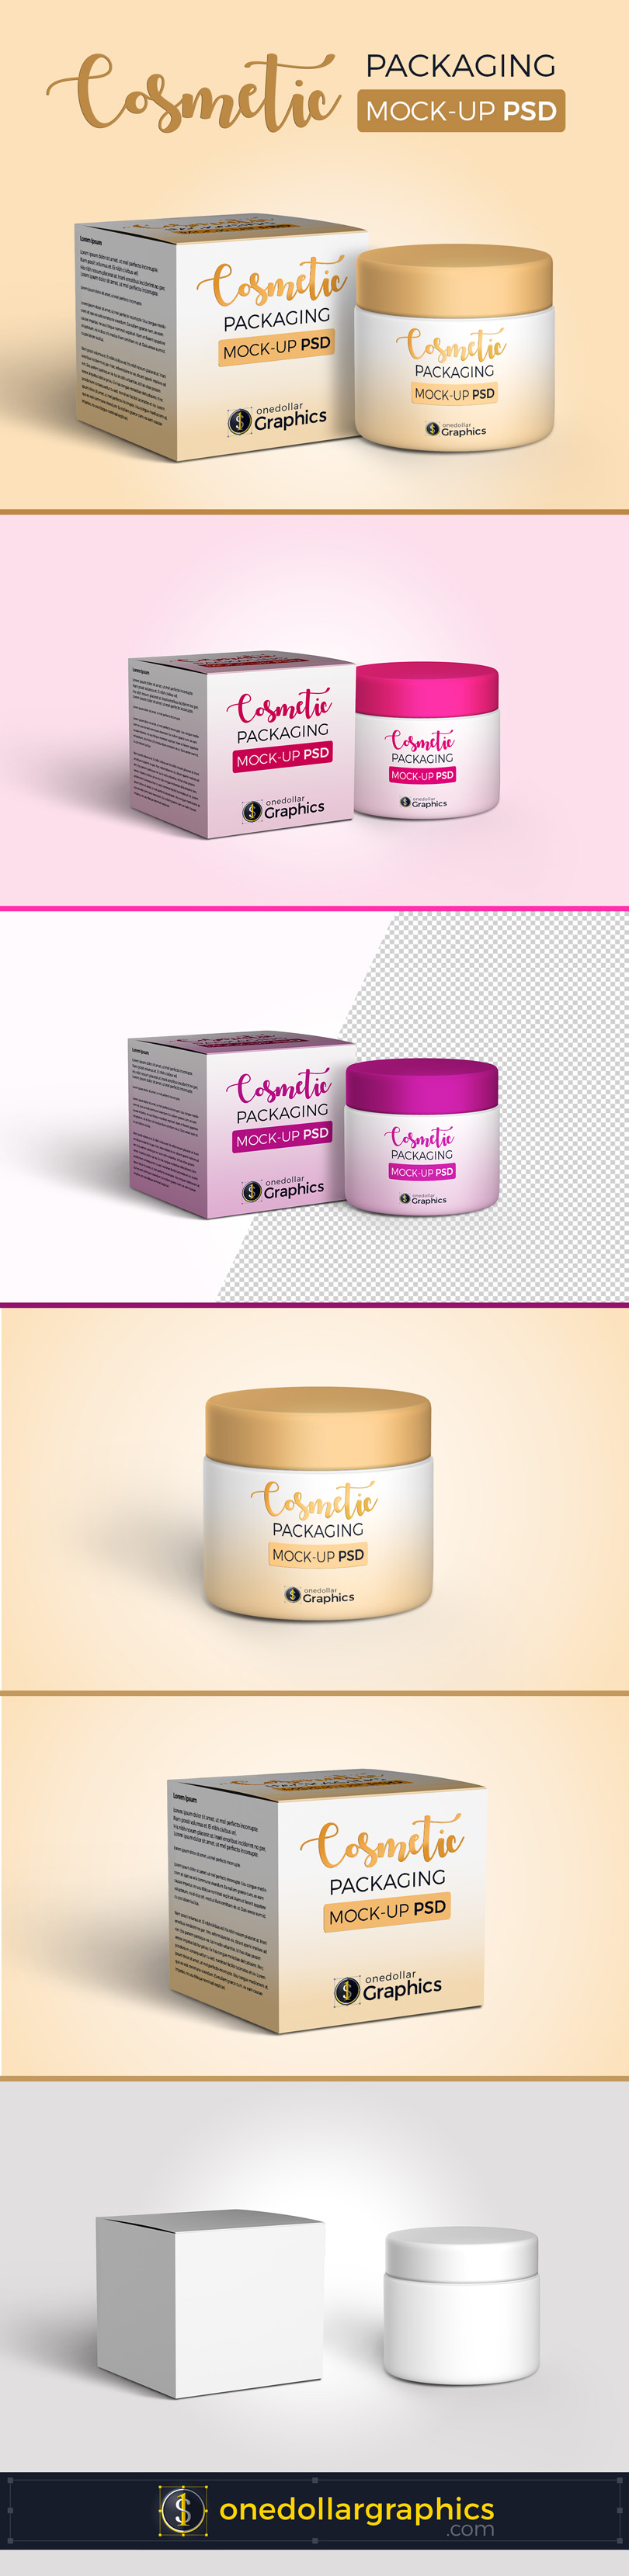 cosmatics-packaging-mockup-post-final